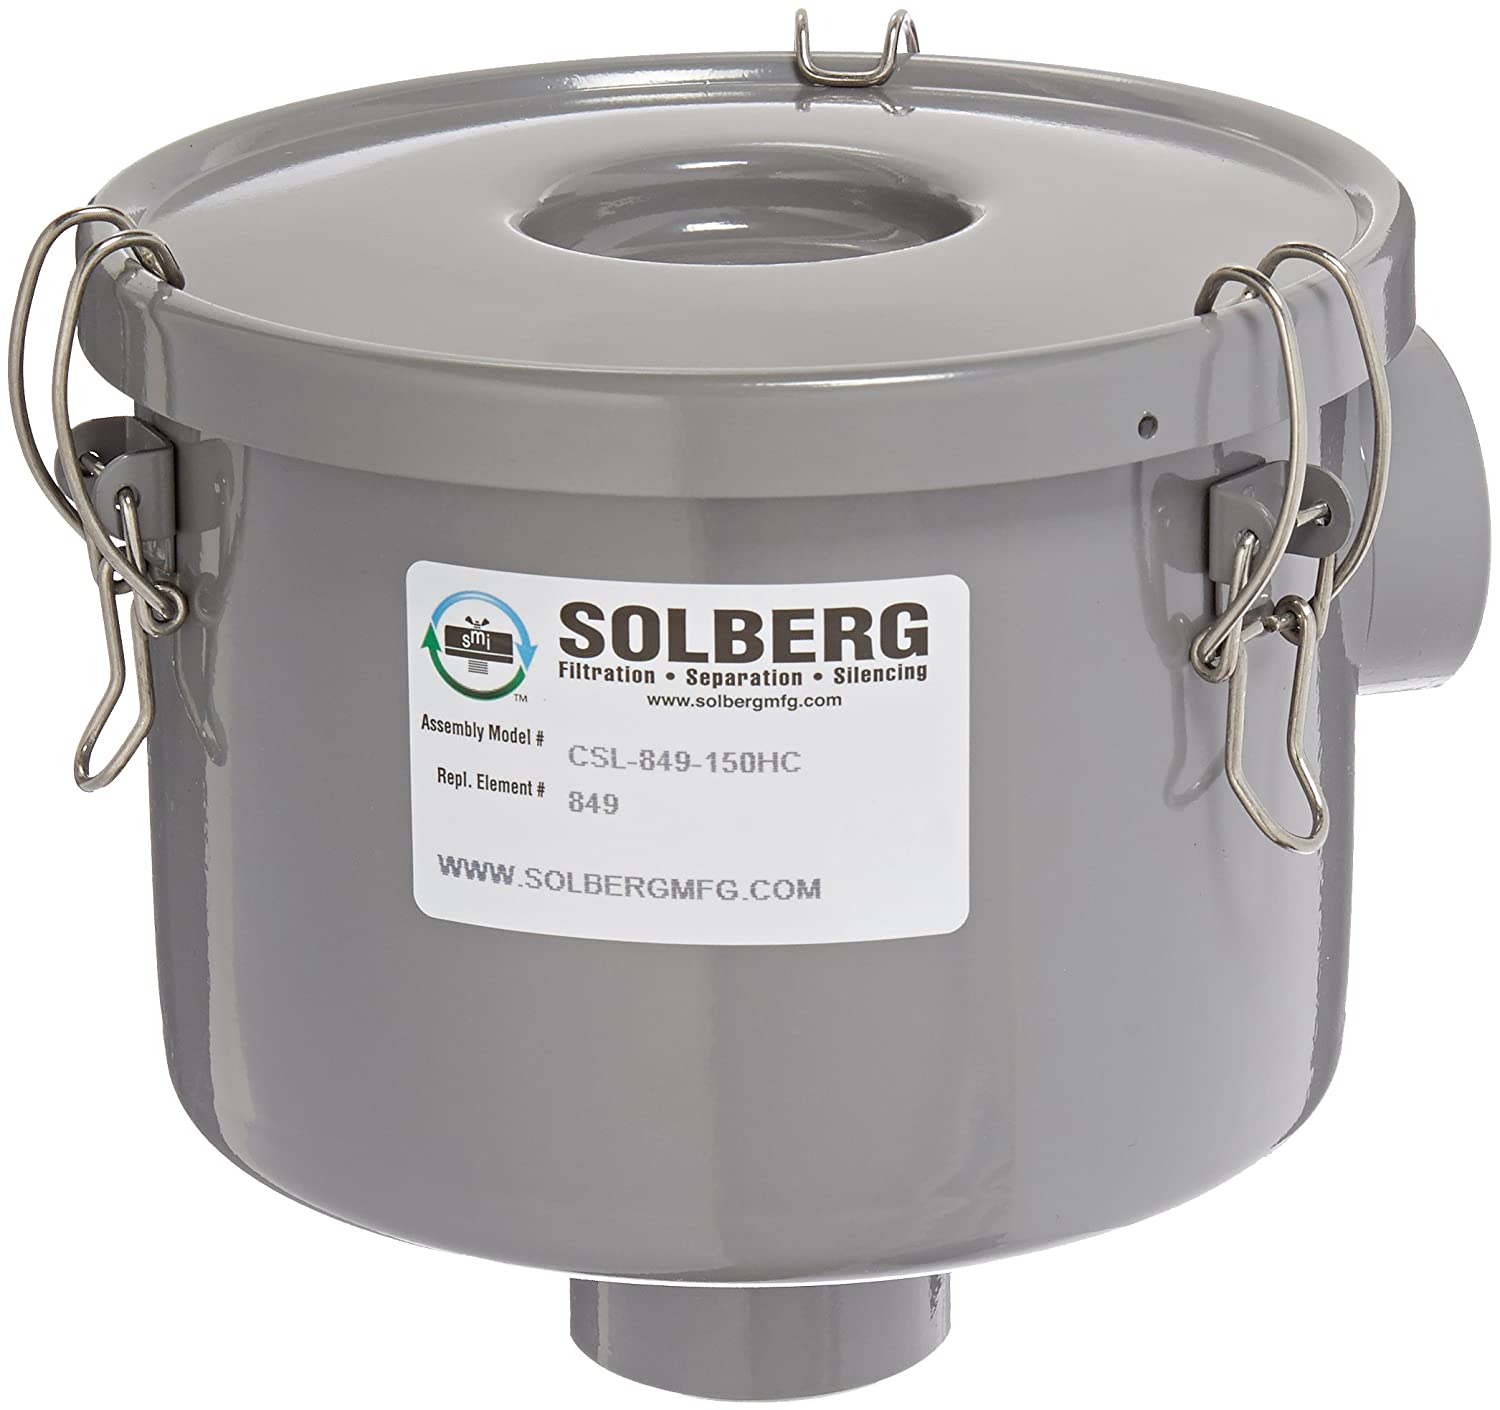 "Solberg CSL-849-150HC Inlet Vacuum Pump Air Filter, 1-1/2"" FPT Inlet/Outlet, 6-3/4"" Height, 7-5/16"" Diameter, 80 SCFM, Made in the USA"